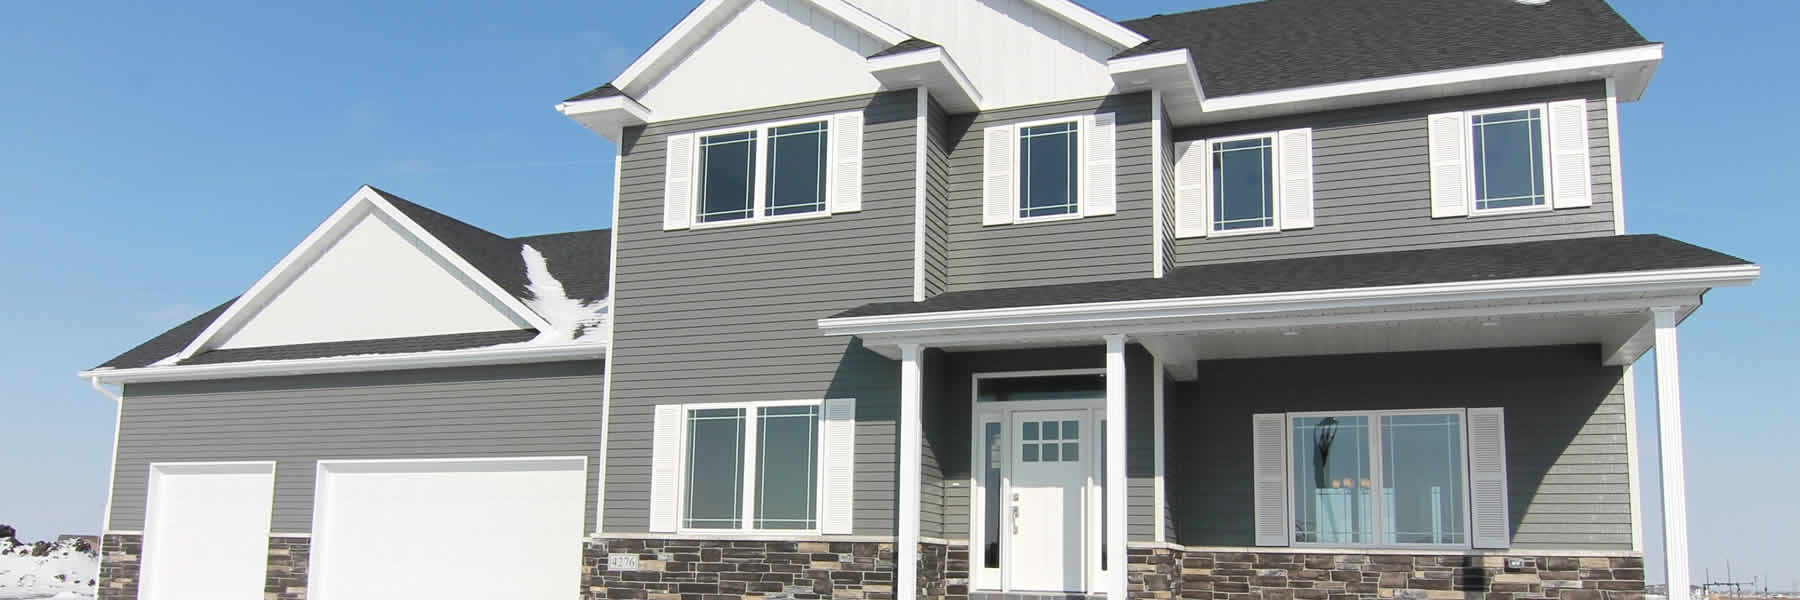 Contact T&S Custom Homes to build your specialty home in Fargo-Moorhead.